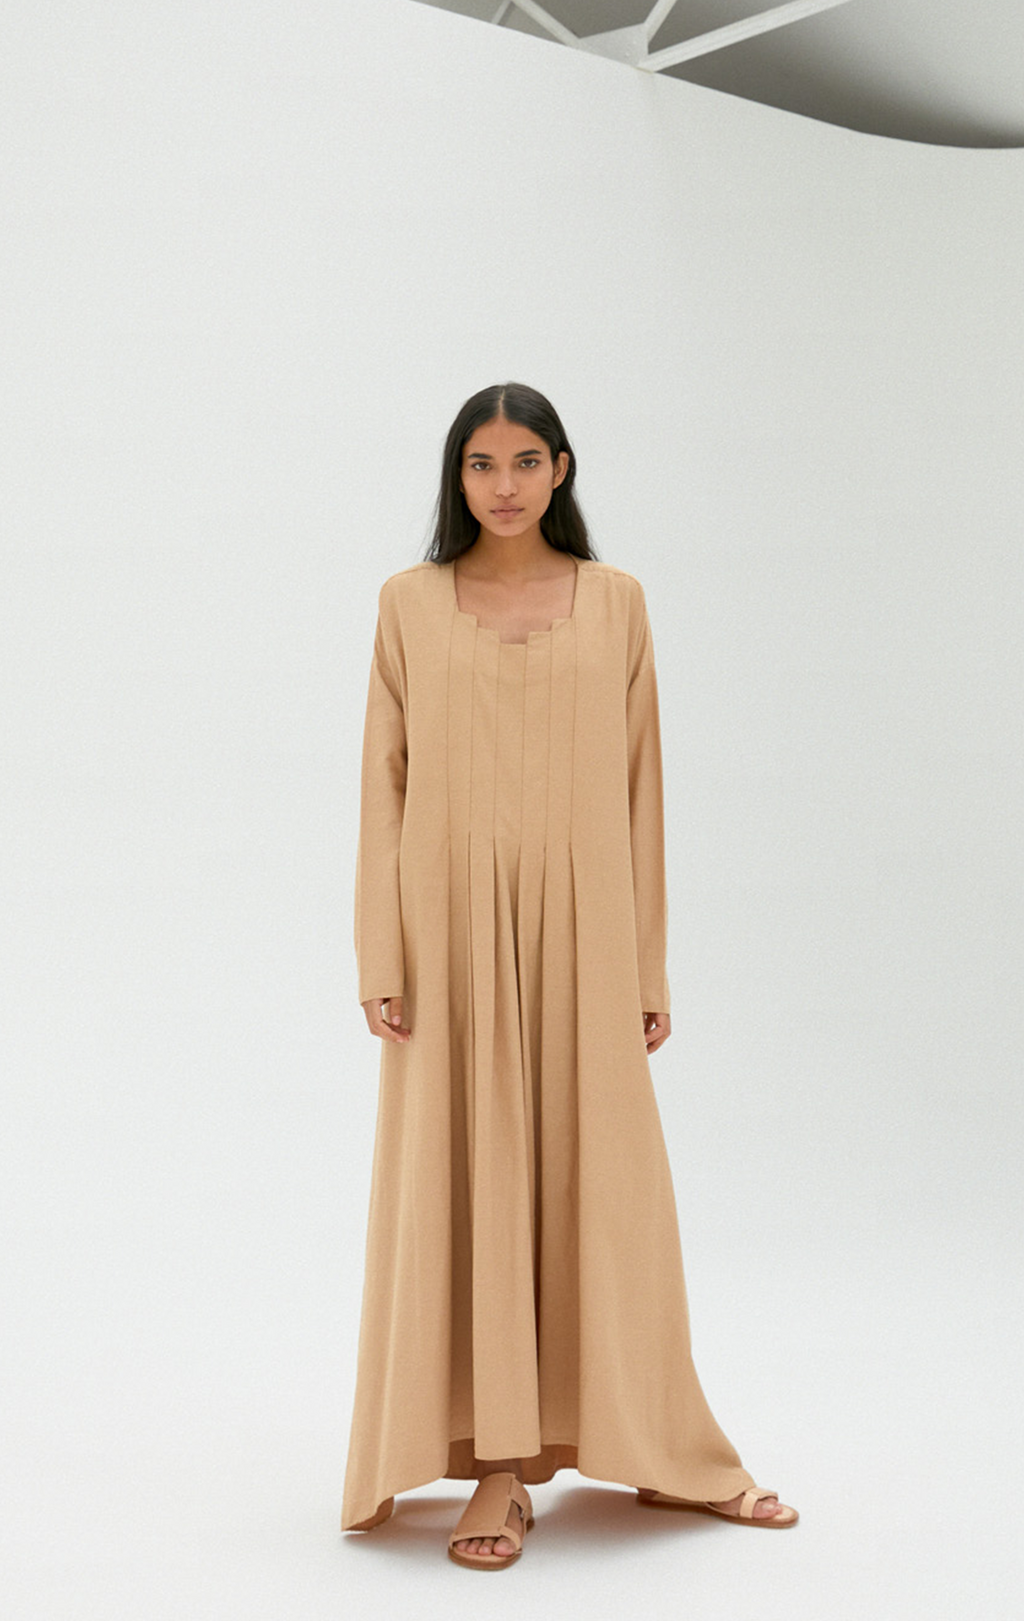 Monica Cordera Pleated Light Cotton Dress - Camel